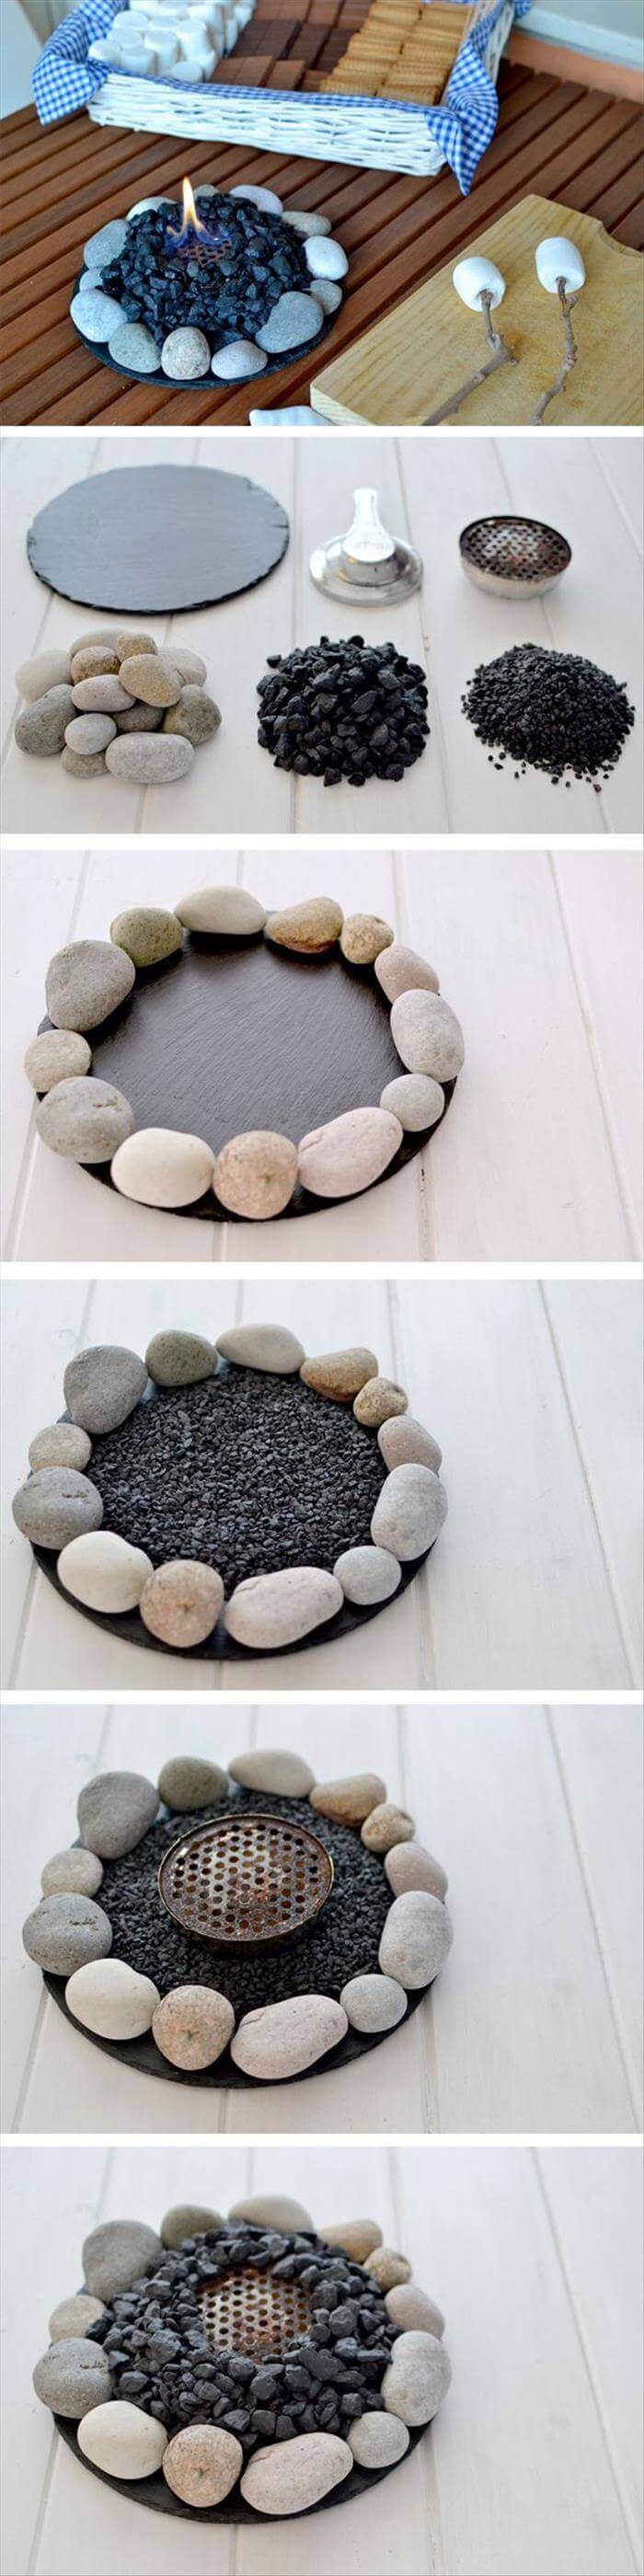 27 Best DIY Pebble and River Rock Decor Ideas and Designs ... on Rock Decorating Ideas  id=32192